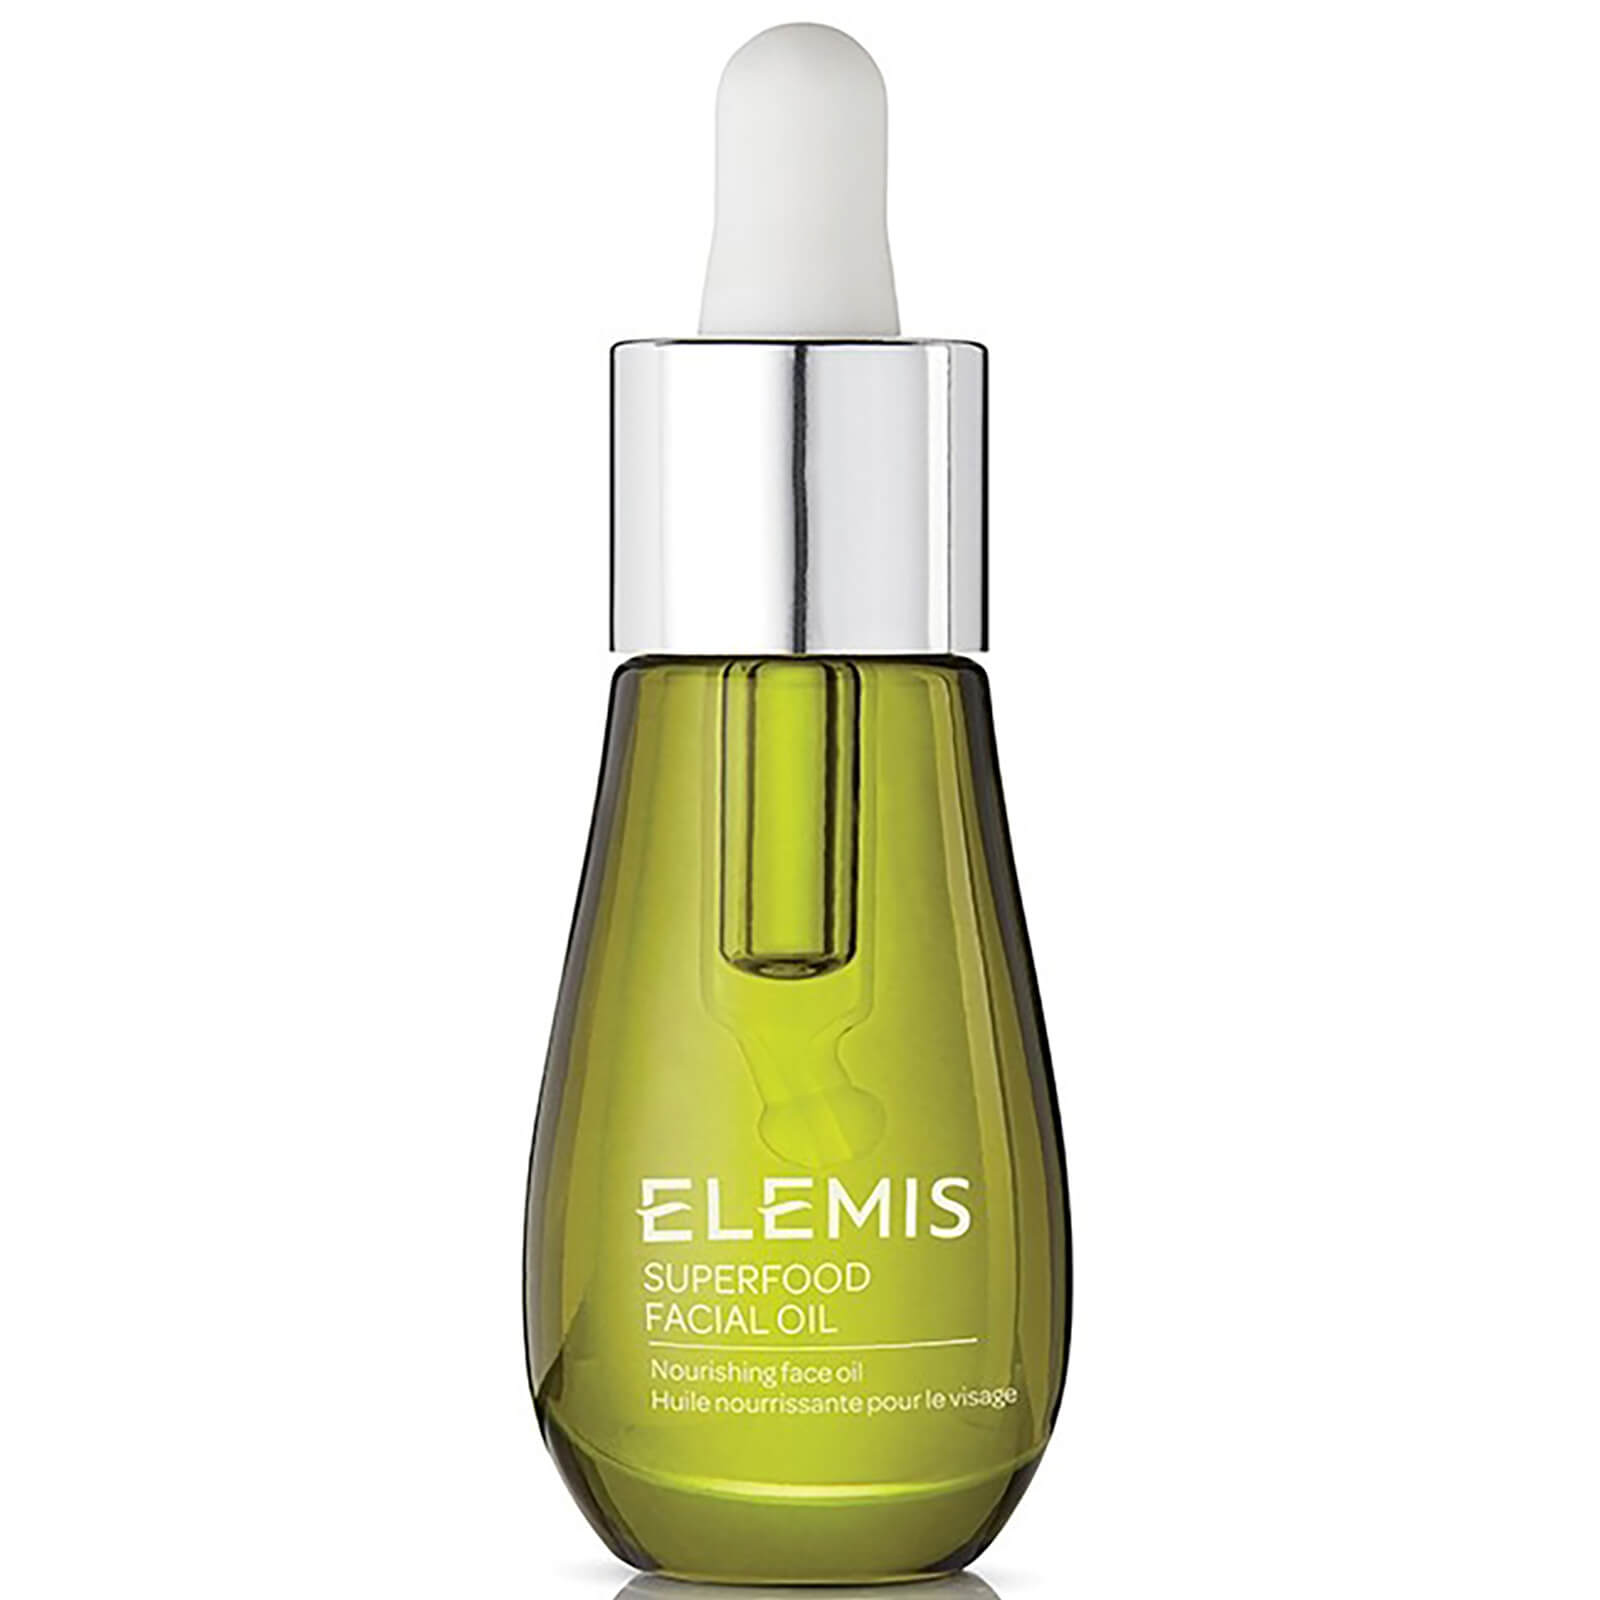 Elemis Superfood Facial Oil, 15ml, facial oil, London Loves Beauty